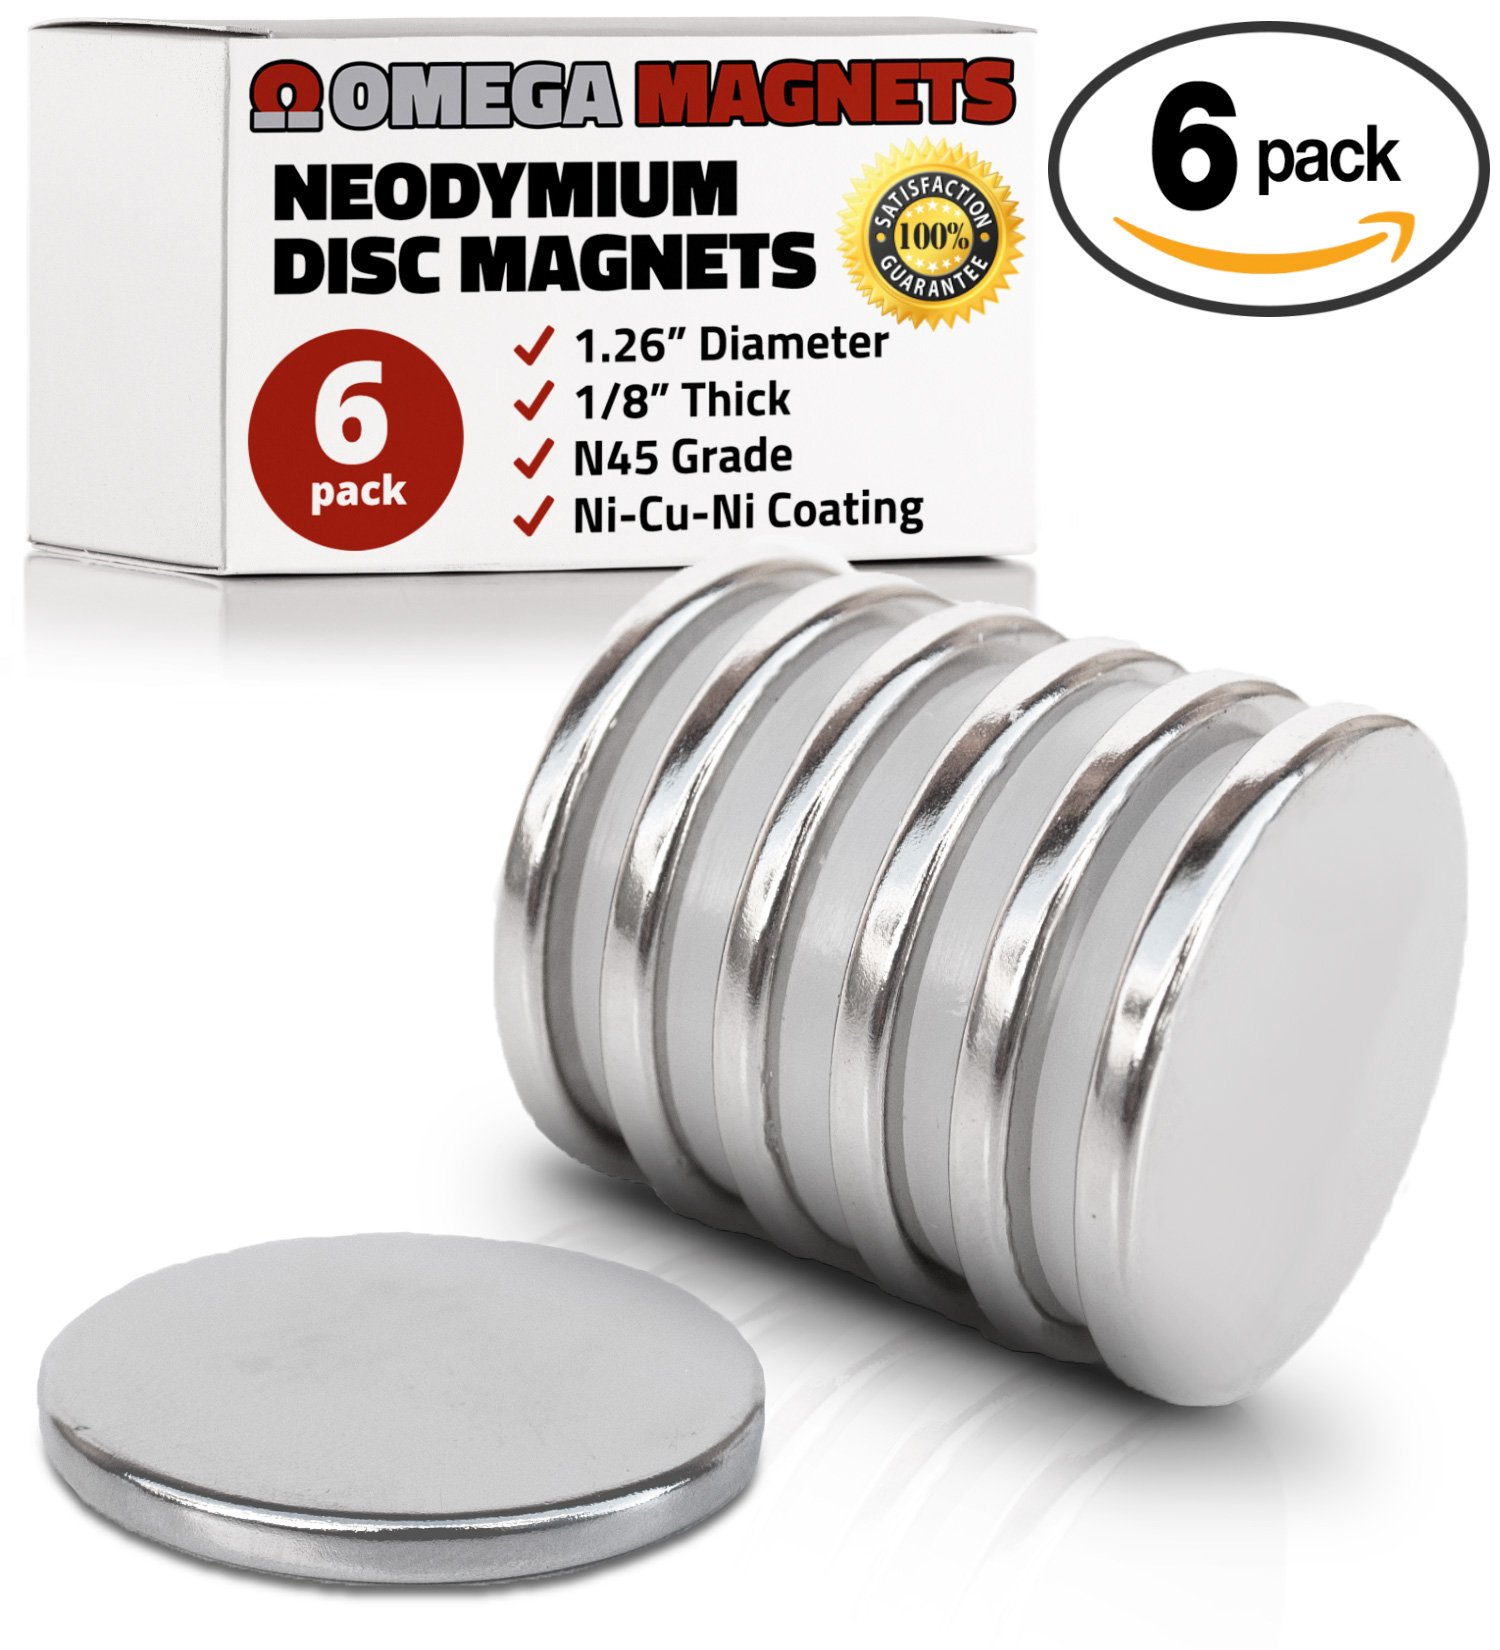 4 Pack 60 x 10 x 5mm Crafts N45 Industrial Strength NdFeB Block Magnet Set for Misti DIY Strong Neodymium Bar Magnets - Powerful Rectangular Rare Earth Magnets